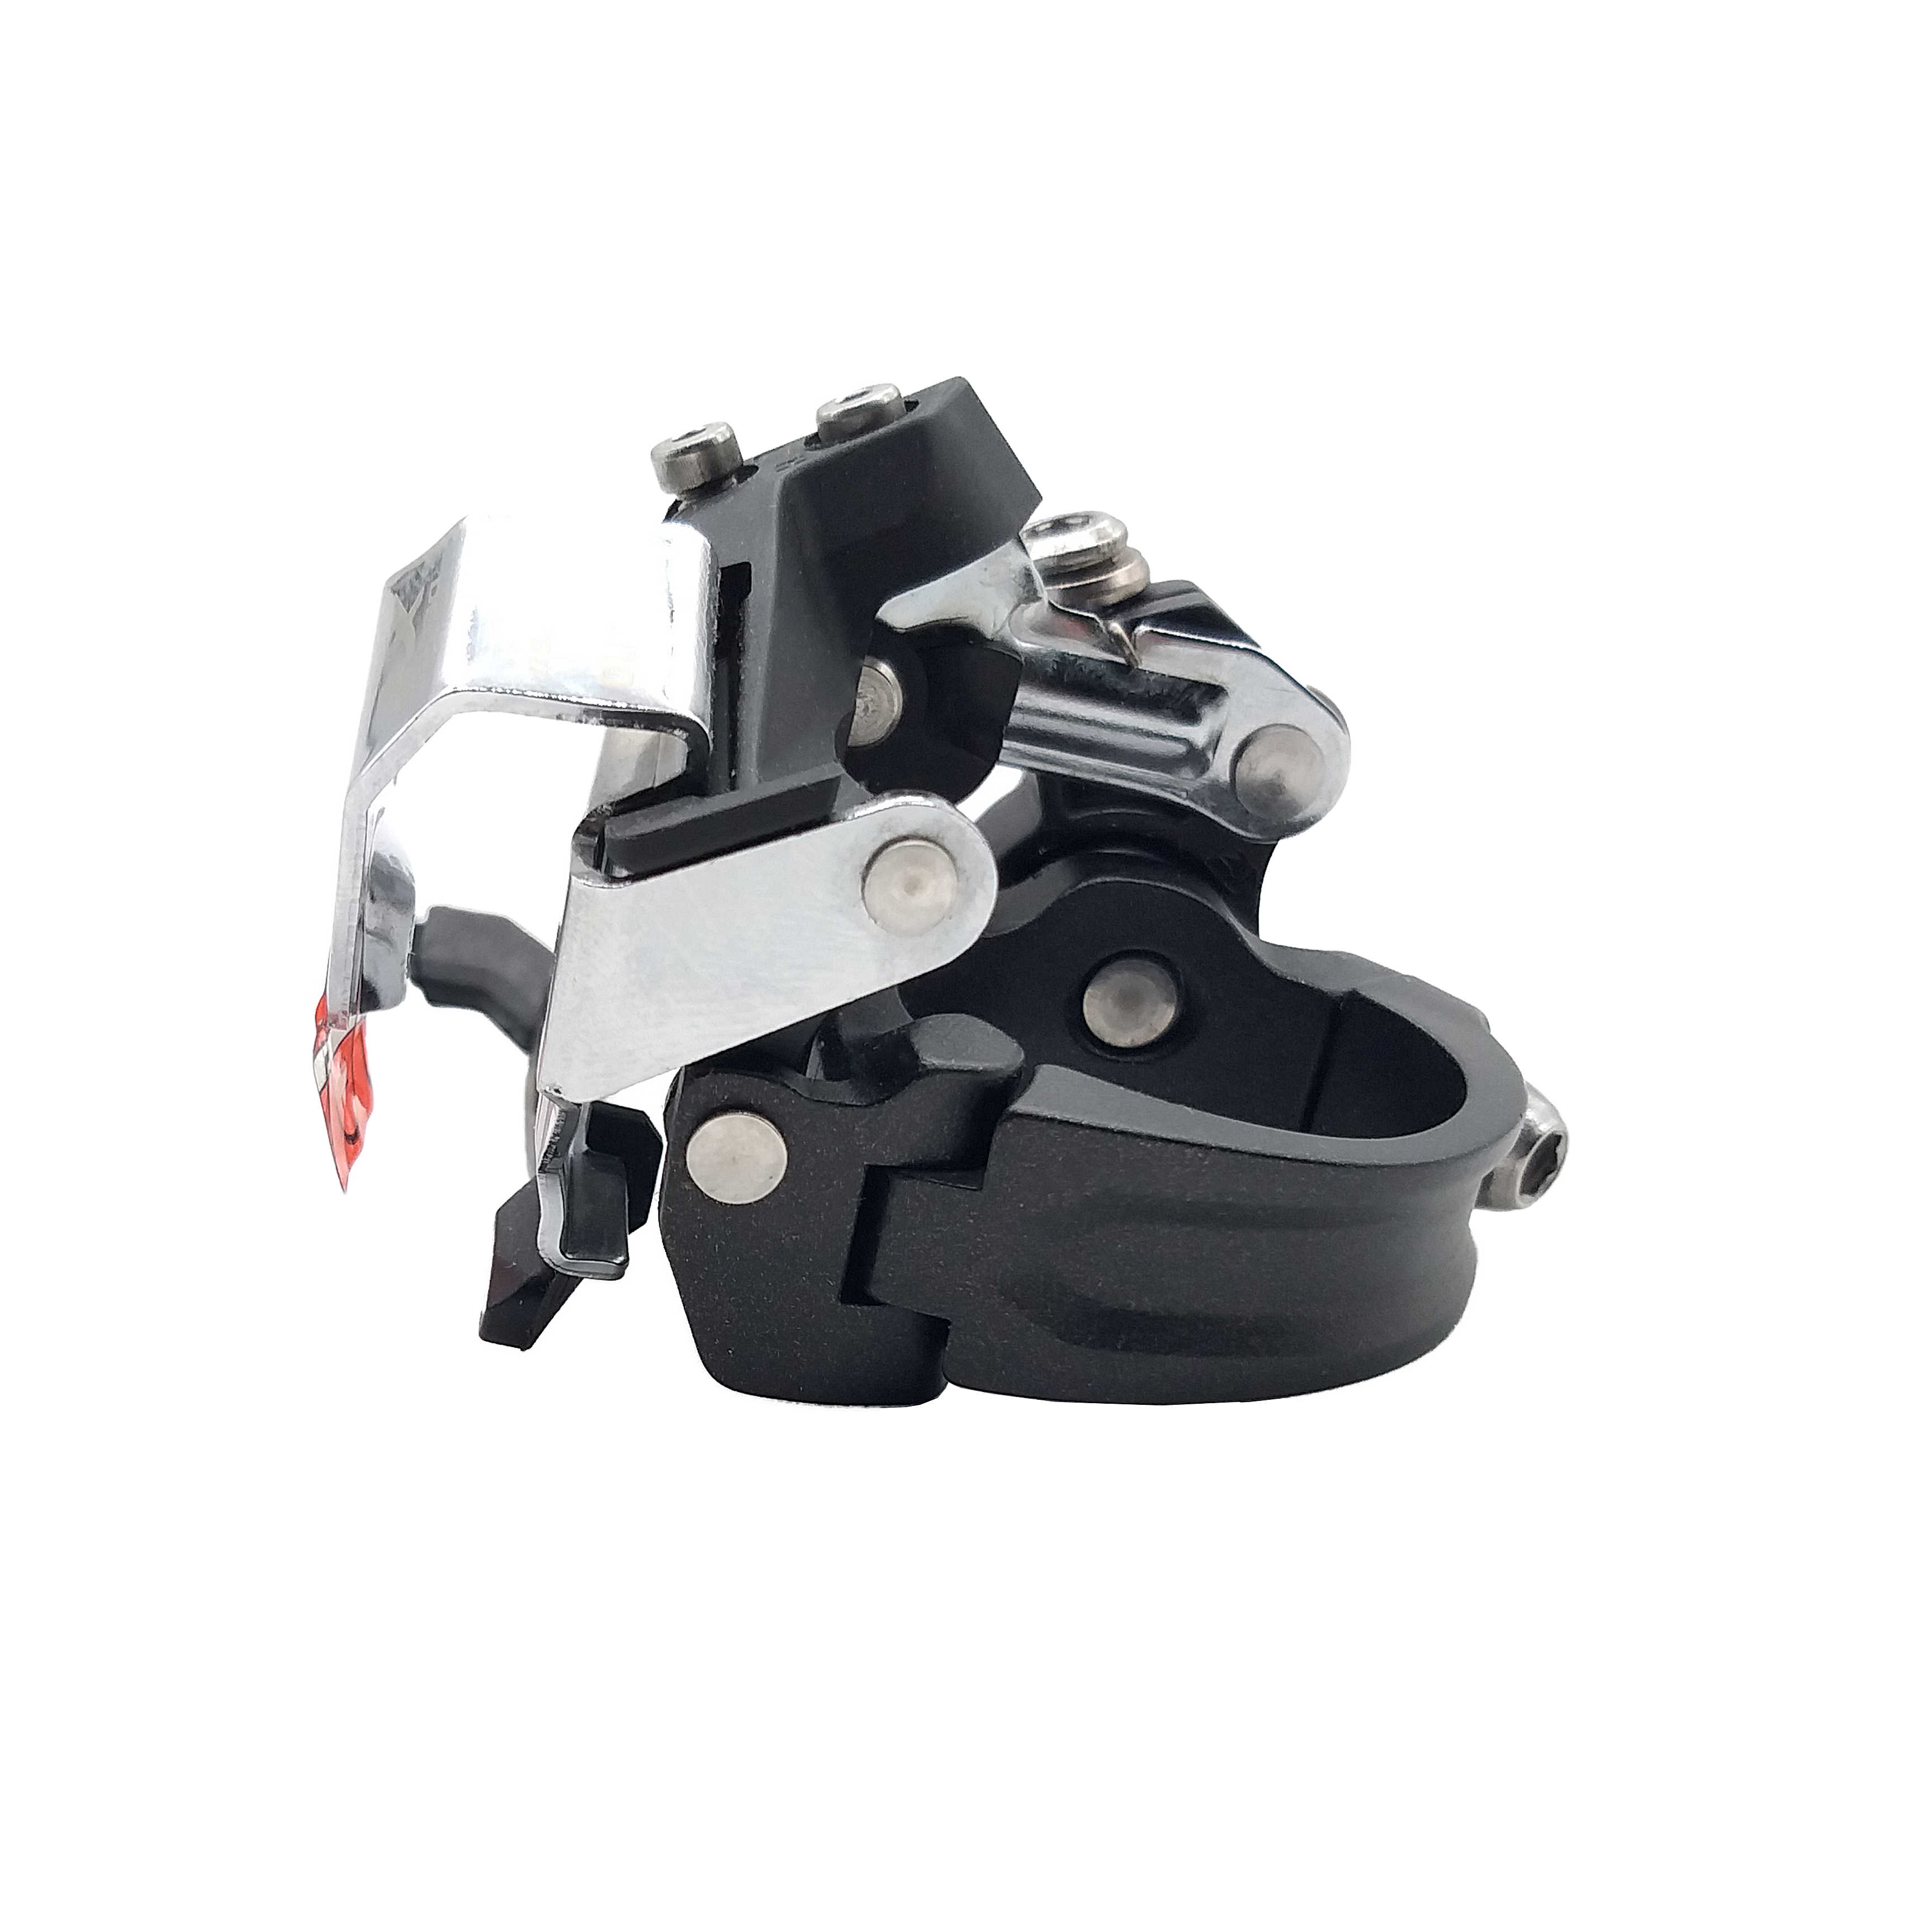 Shimano Deore XT FD-M8025-H 2x11 Derailleur Clamp High Clamp DS TP-NEW